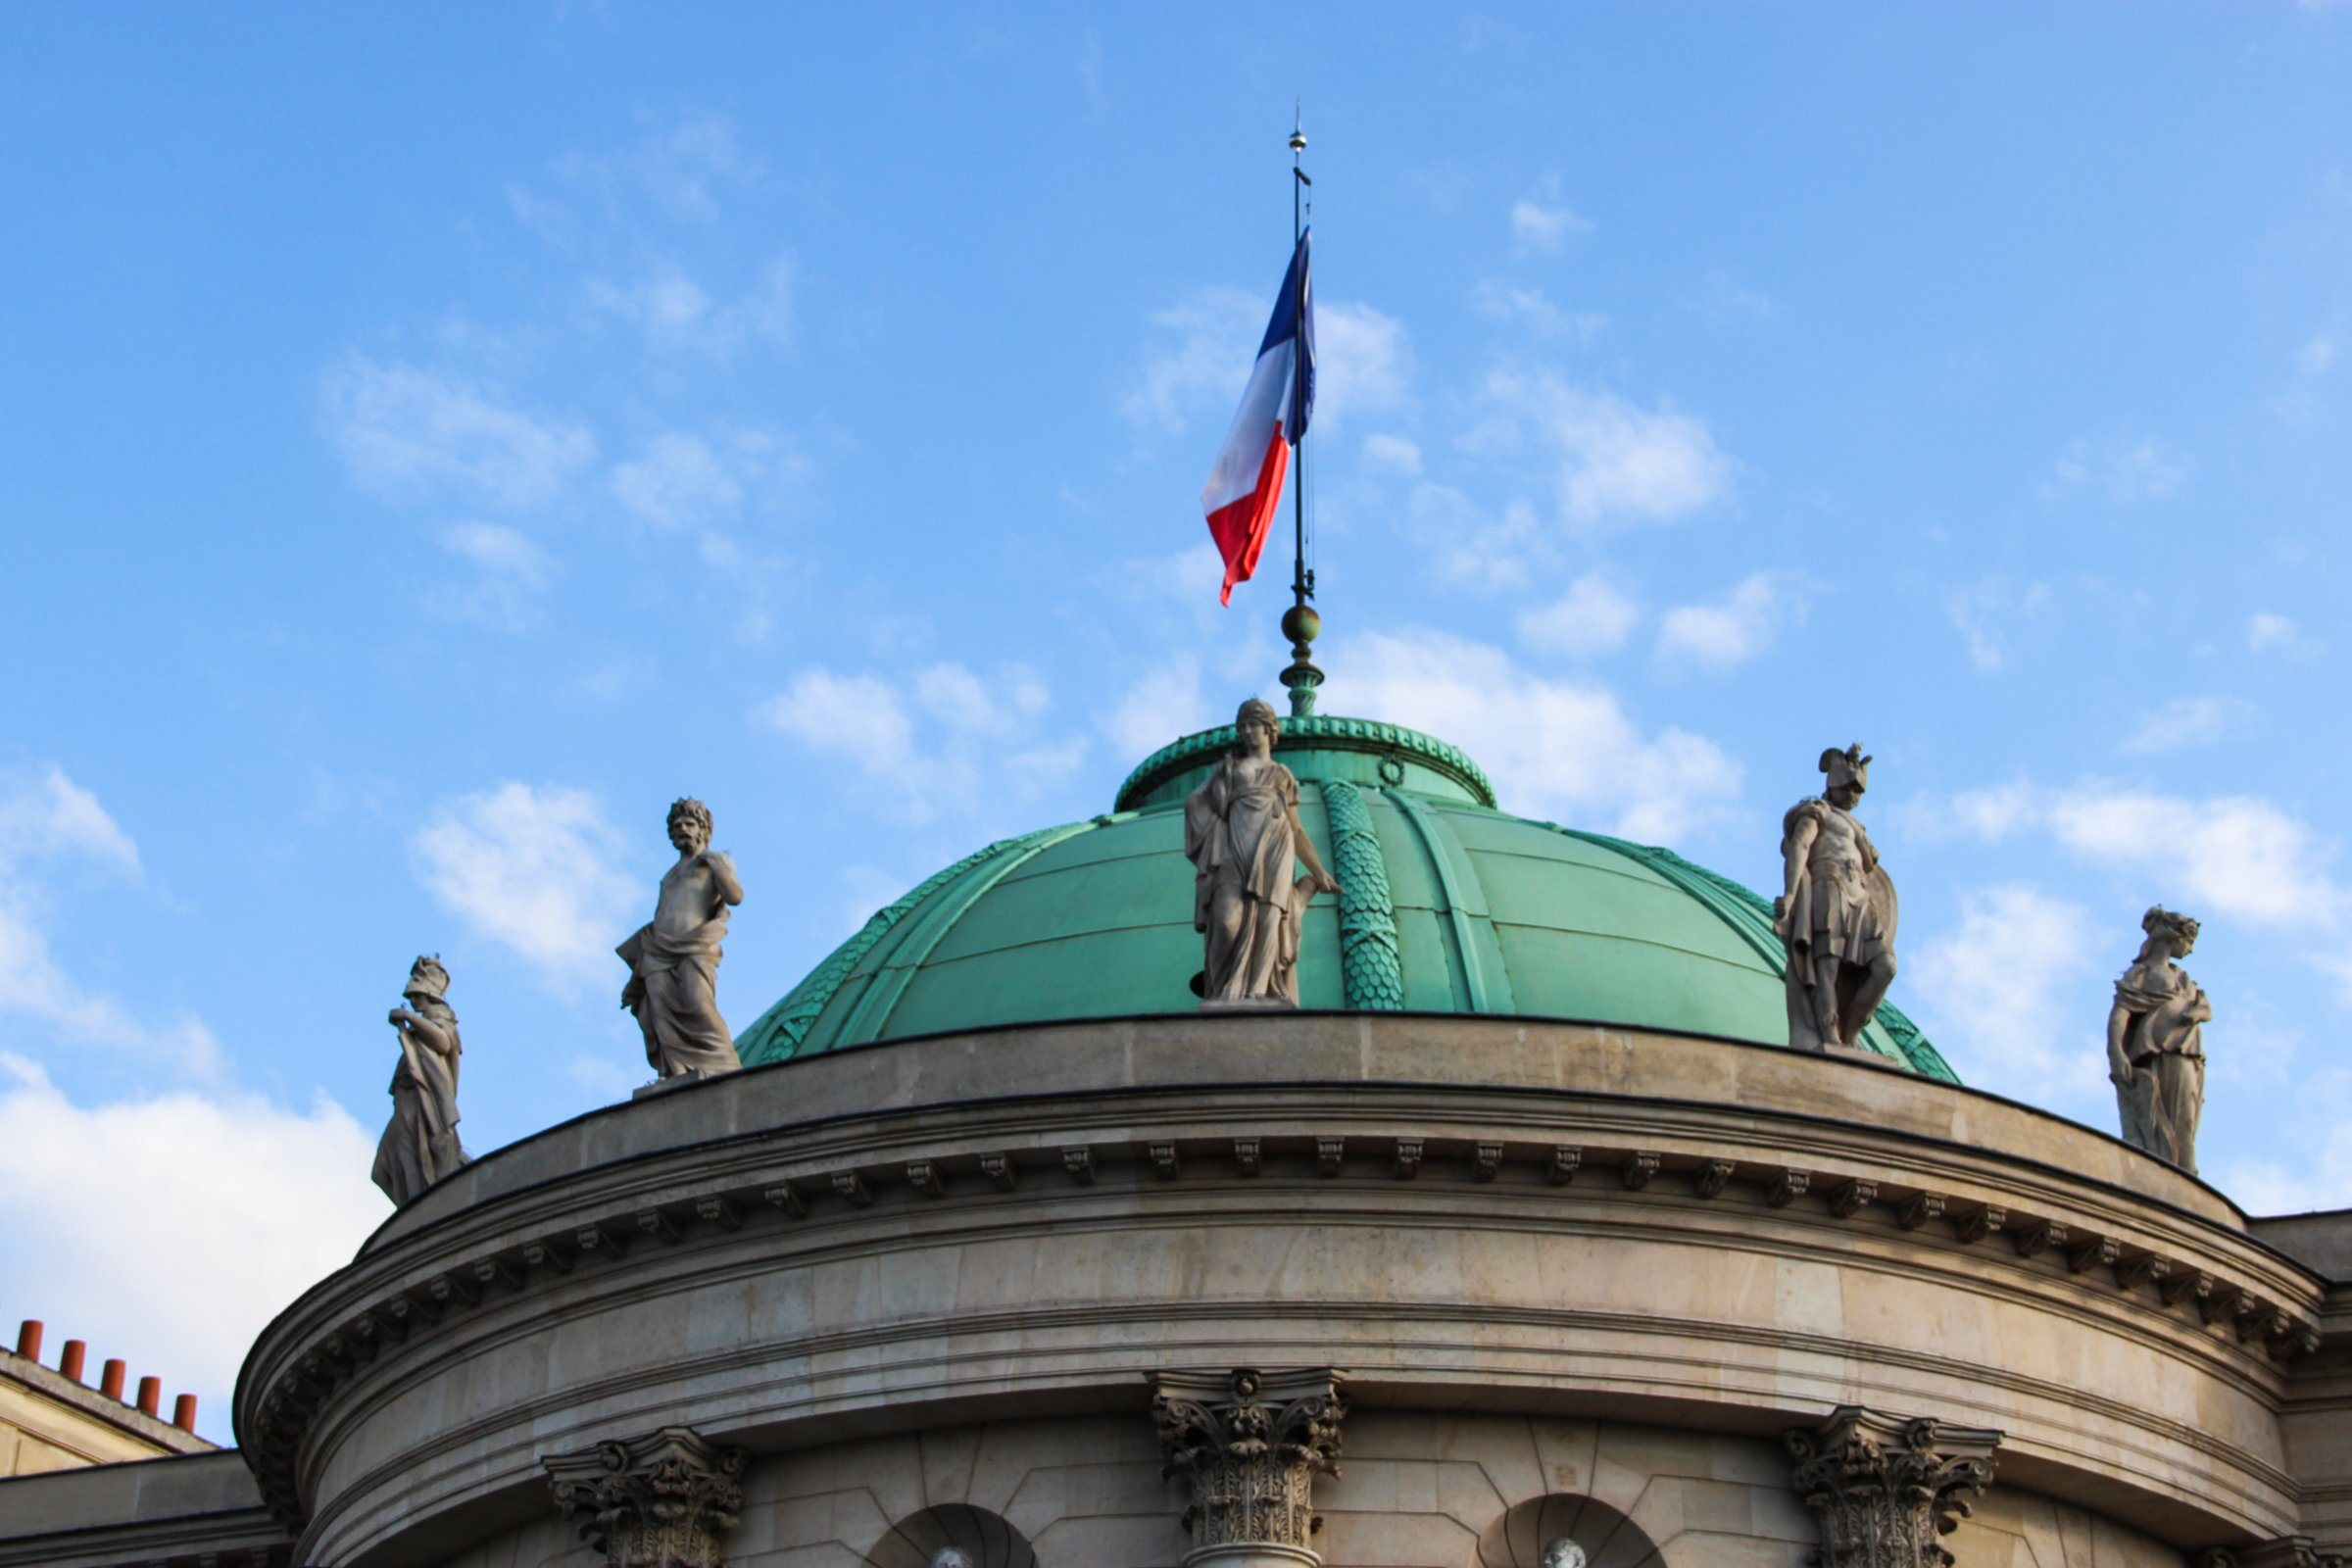 French Flag On Dome Roof